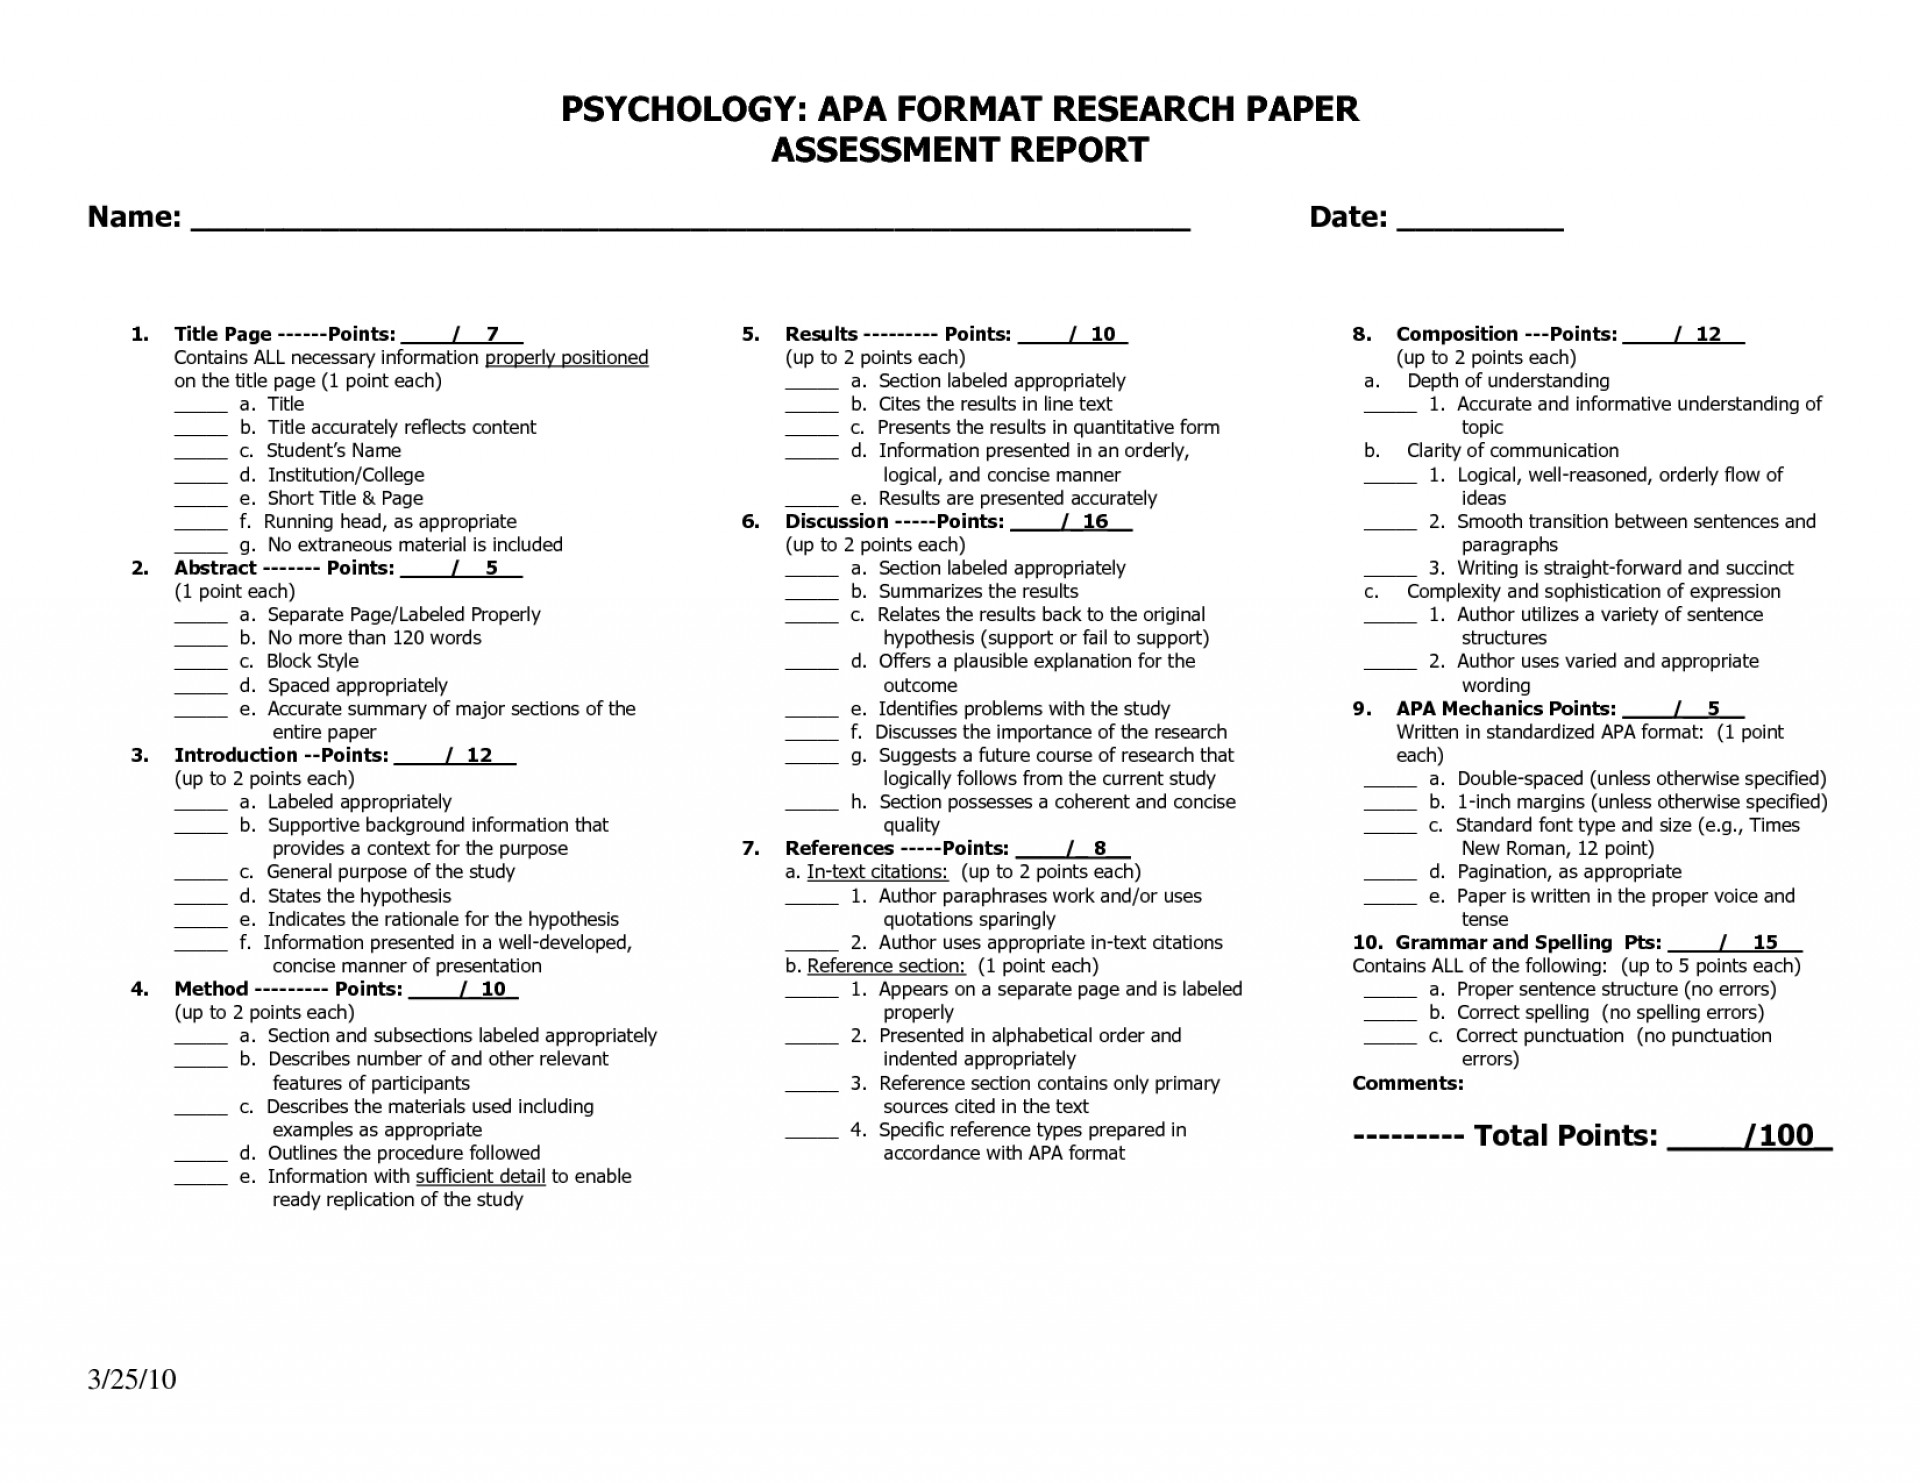 012 Research Paper On Psychology Apamat Wonderful Free Forensic Pdf Topics 1920